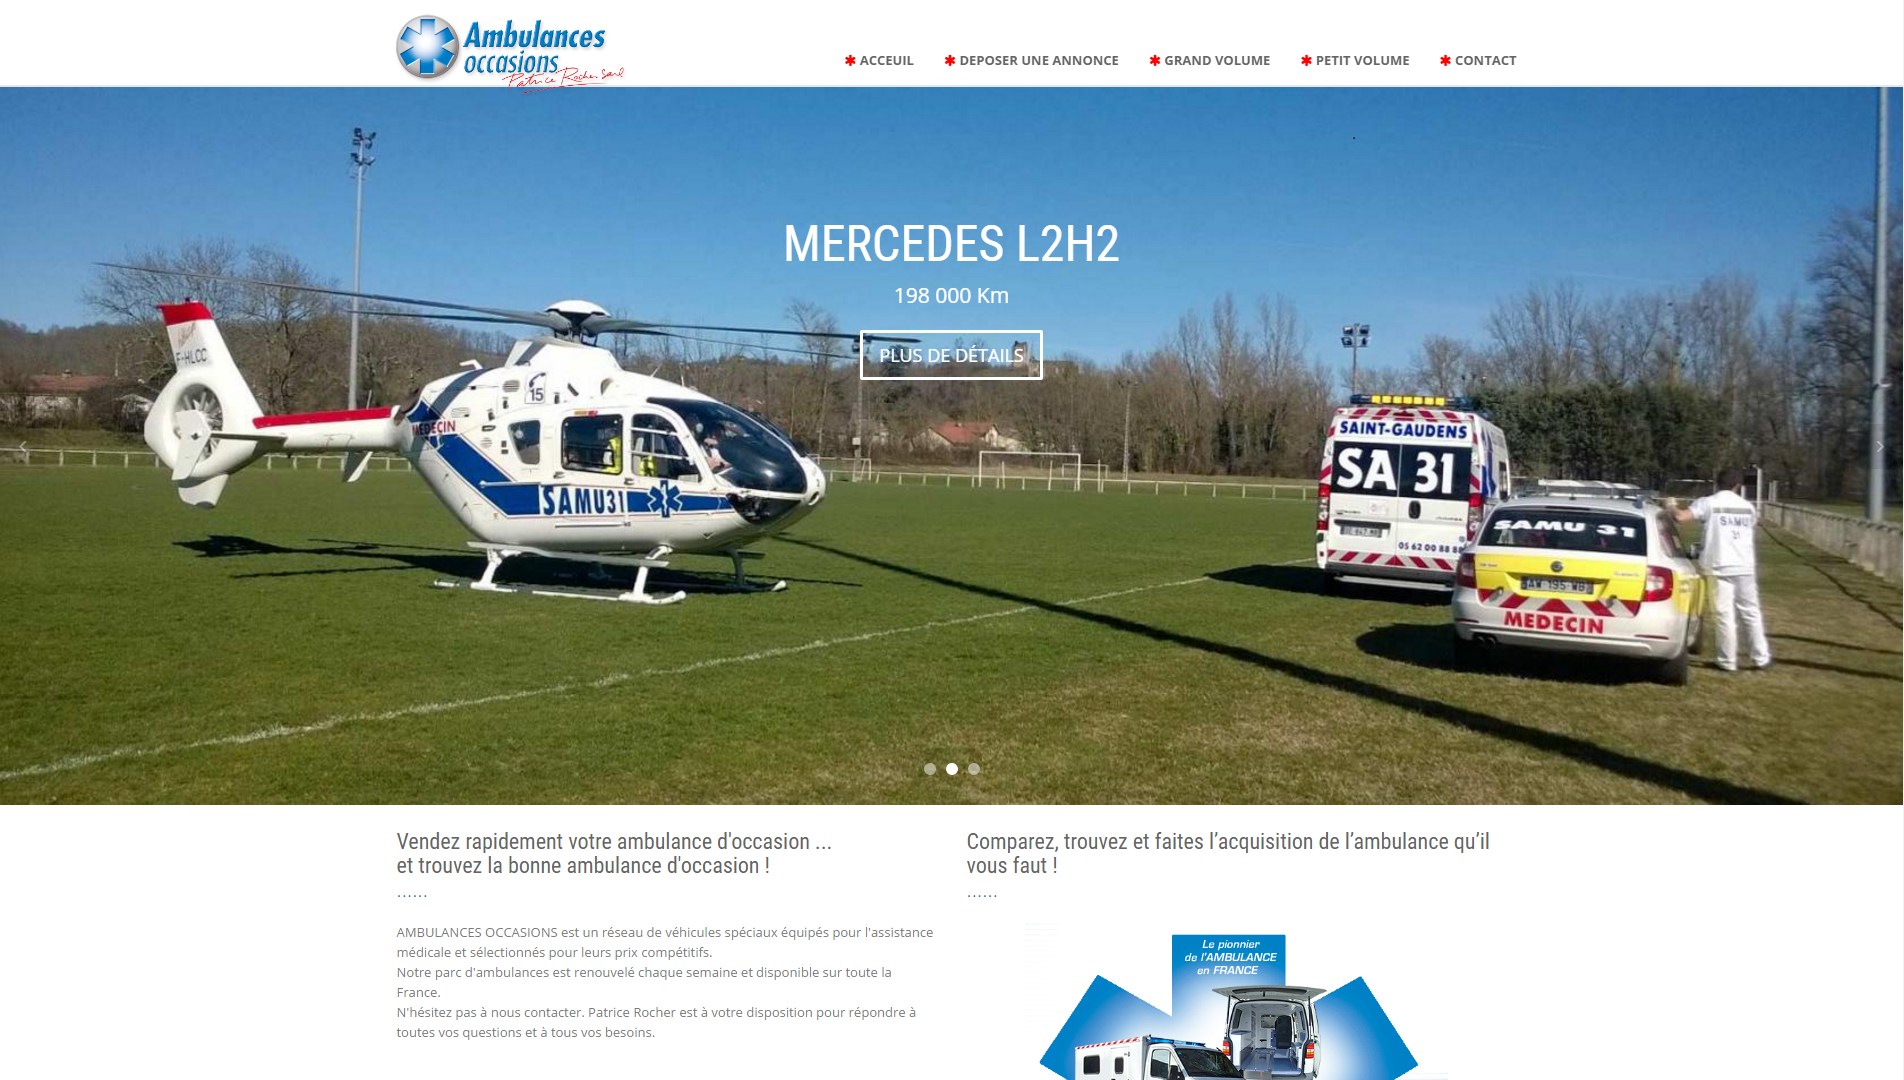 Ambulances Occasions - Refonte du site